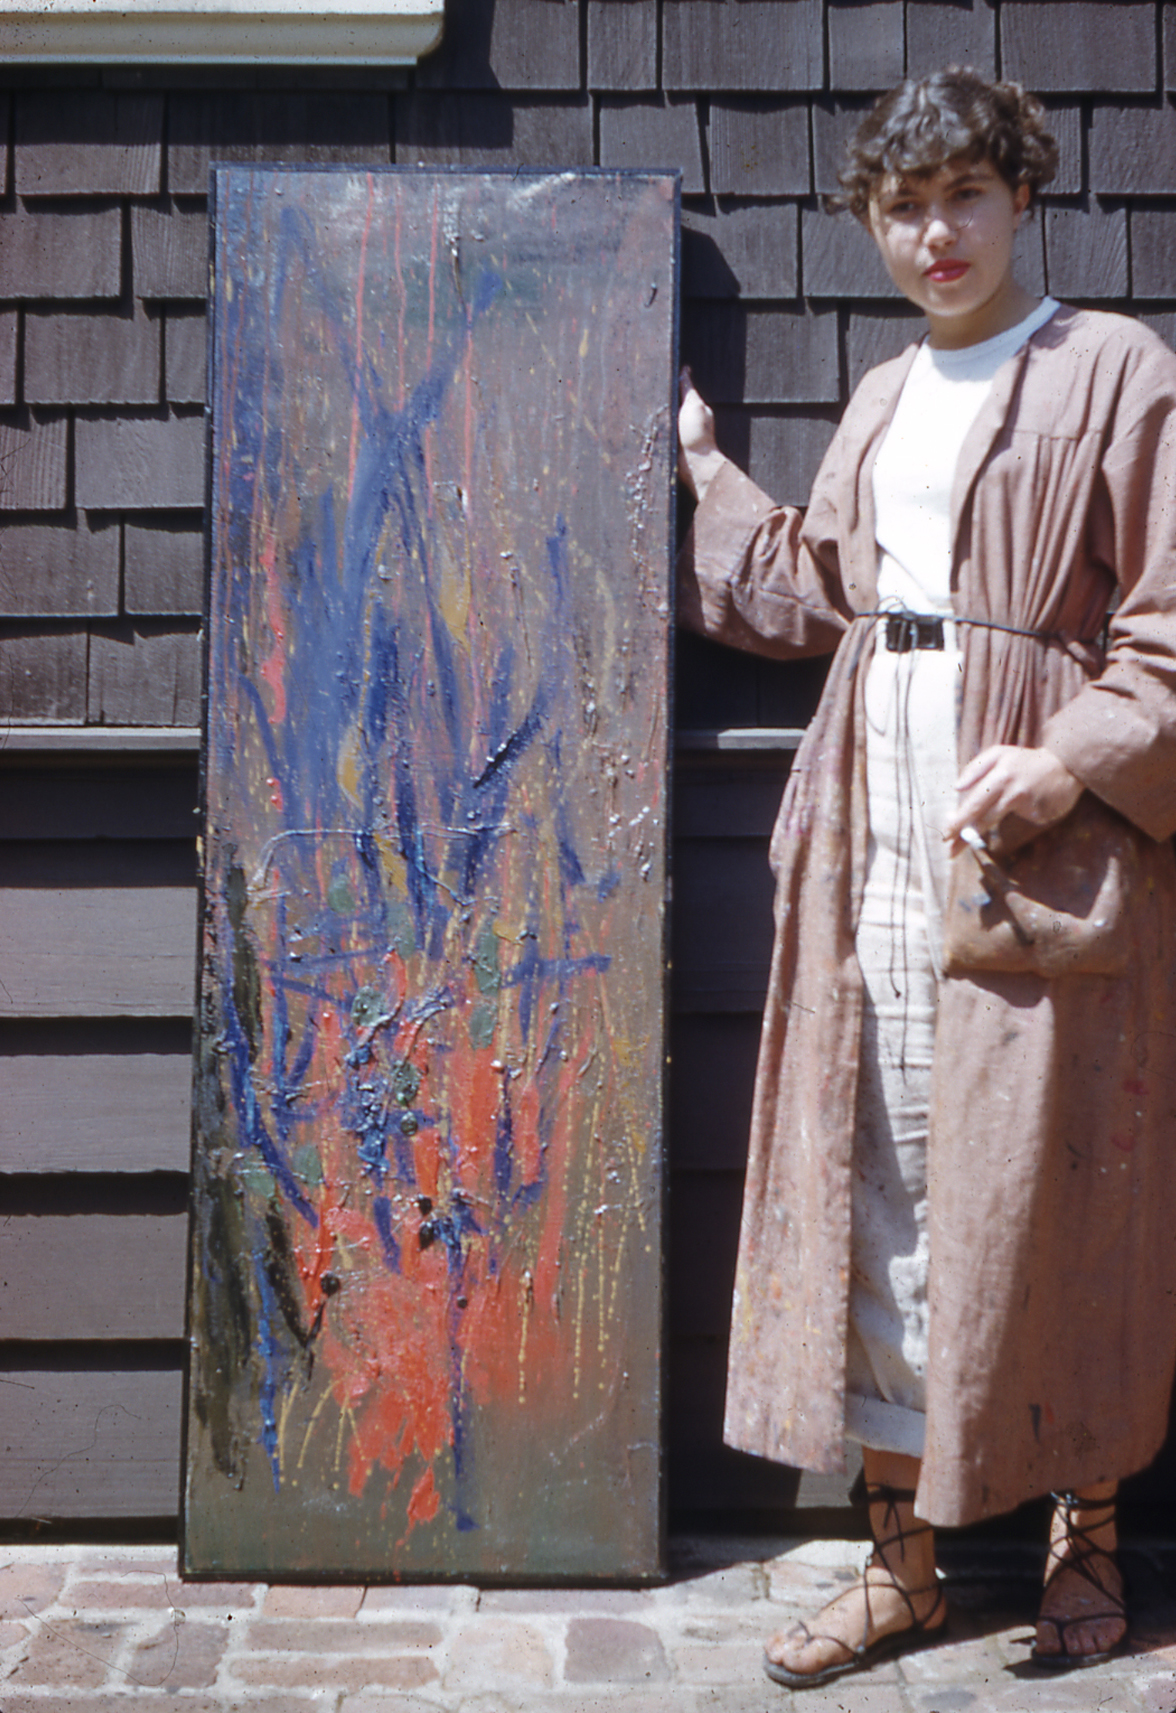 Unknown photographer UC Berkeley student Jay DeFeo standing next to untitled 1951 painting, Berkeley, CA 1951 Reference no. R0417 © 2018 The Jay DeFeo Foundation/Artists Rights Society/ARS, New York.